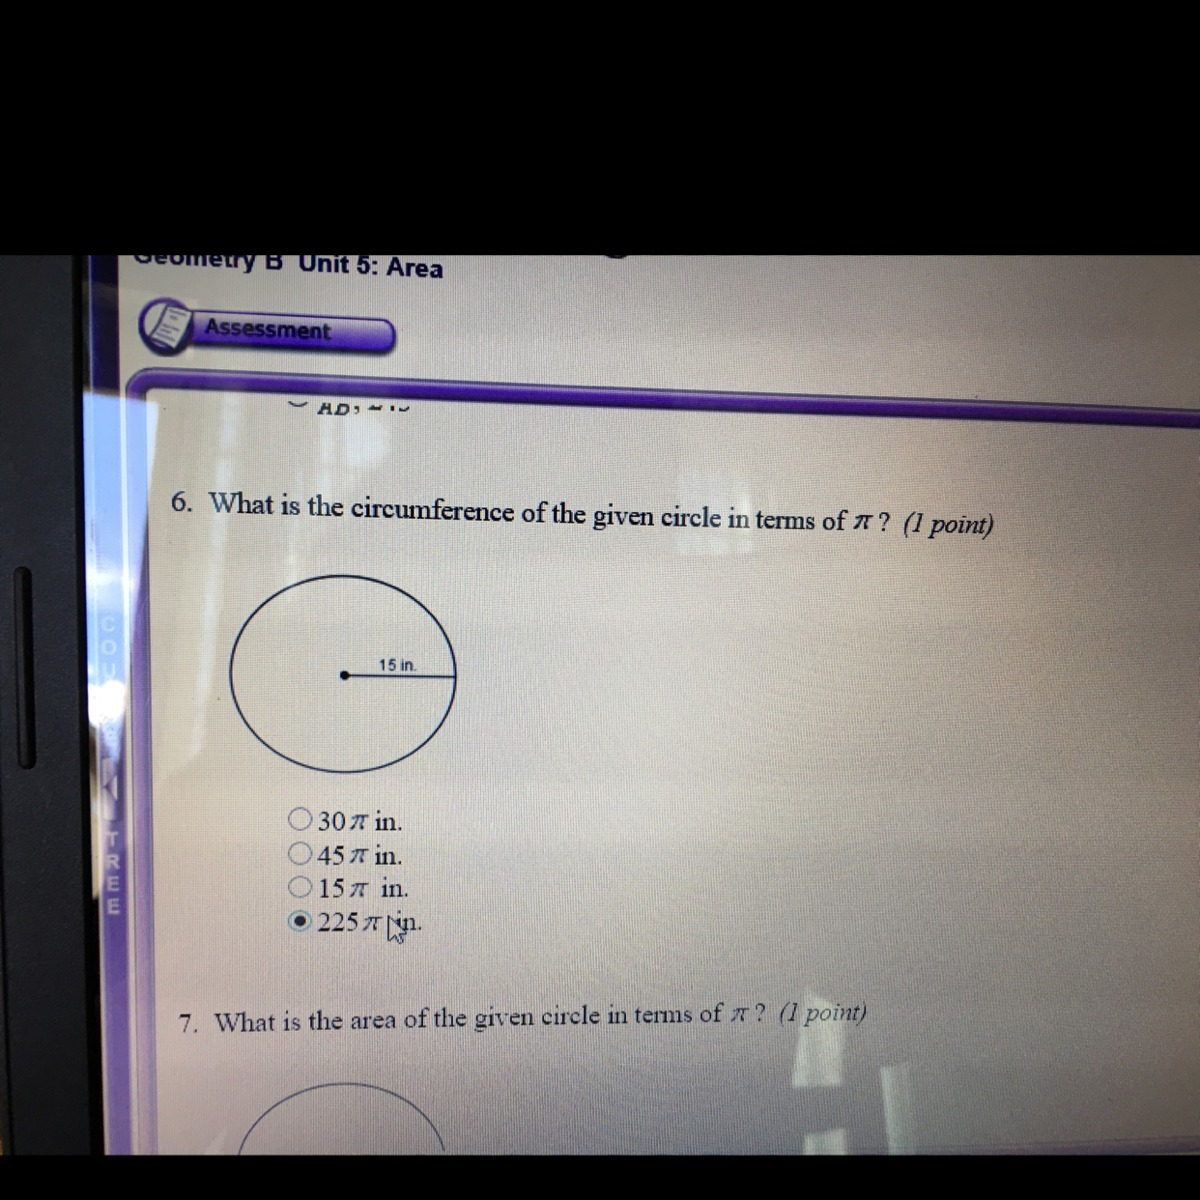 What Is The Circumference Of The Given Circle In Terms Of